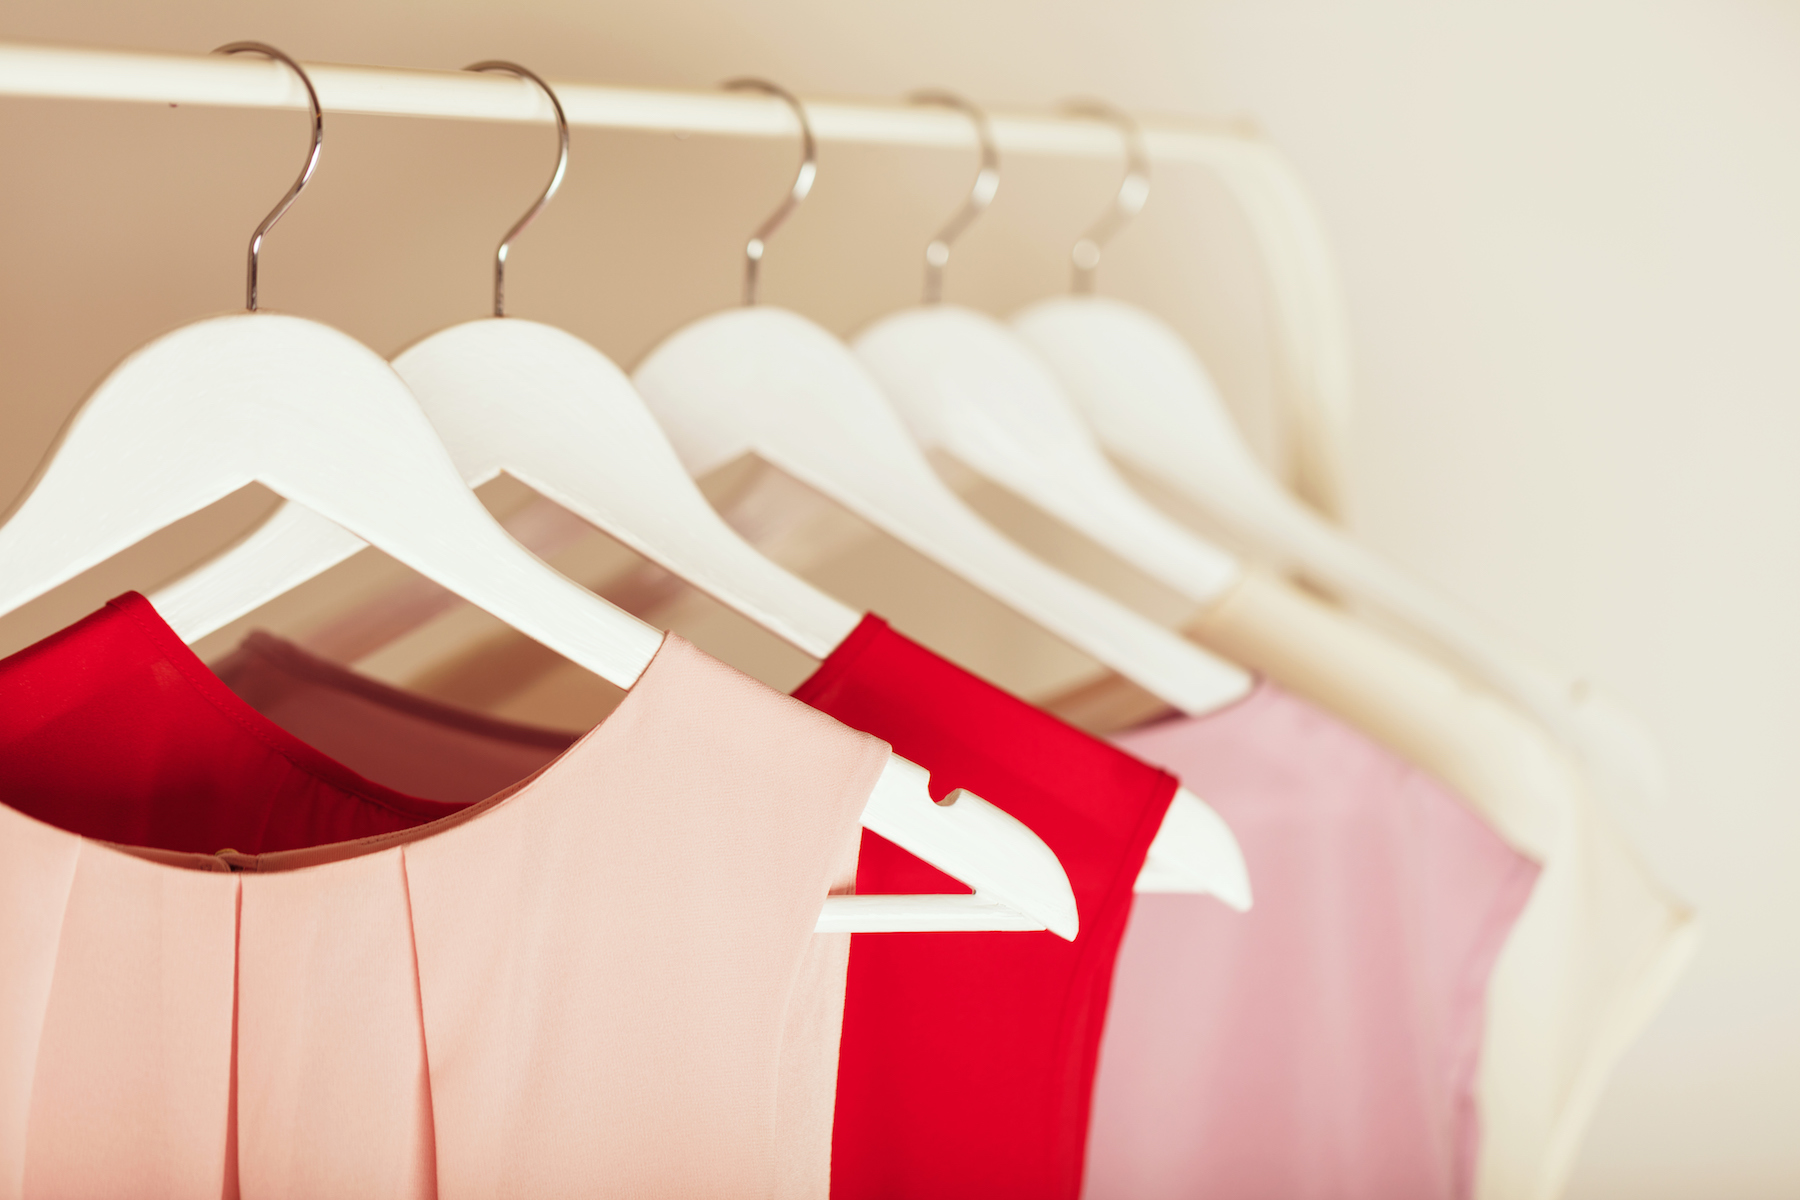 Organized Closet With Pink and Red shirts